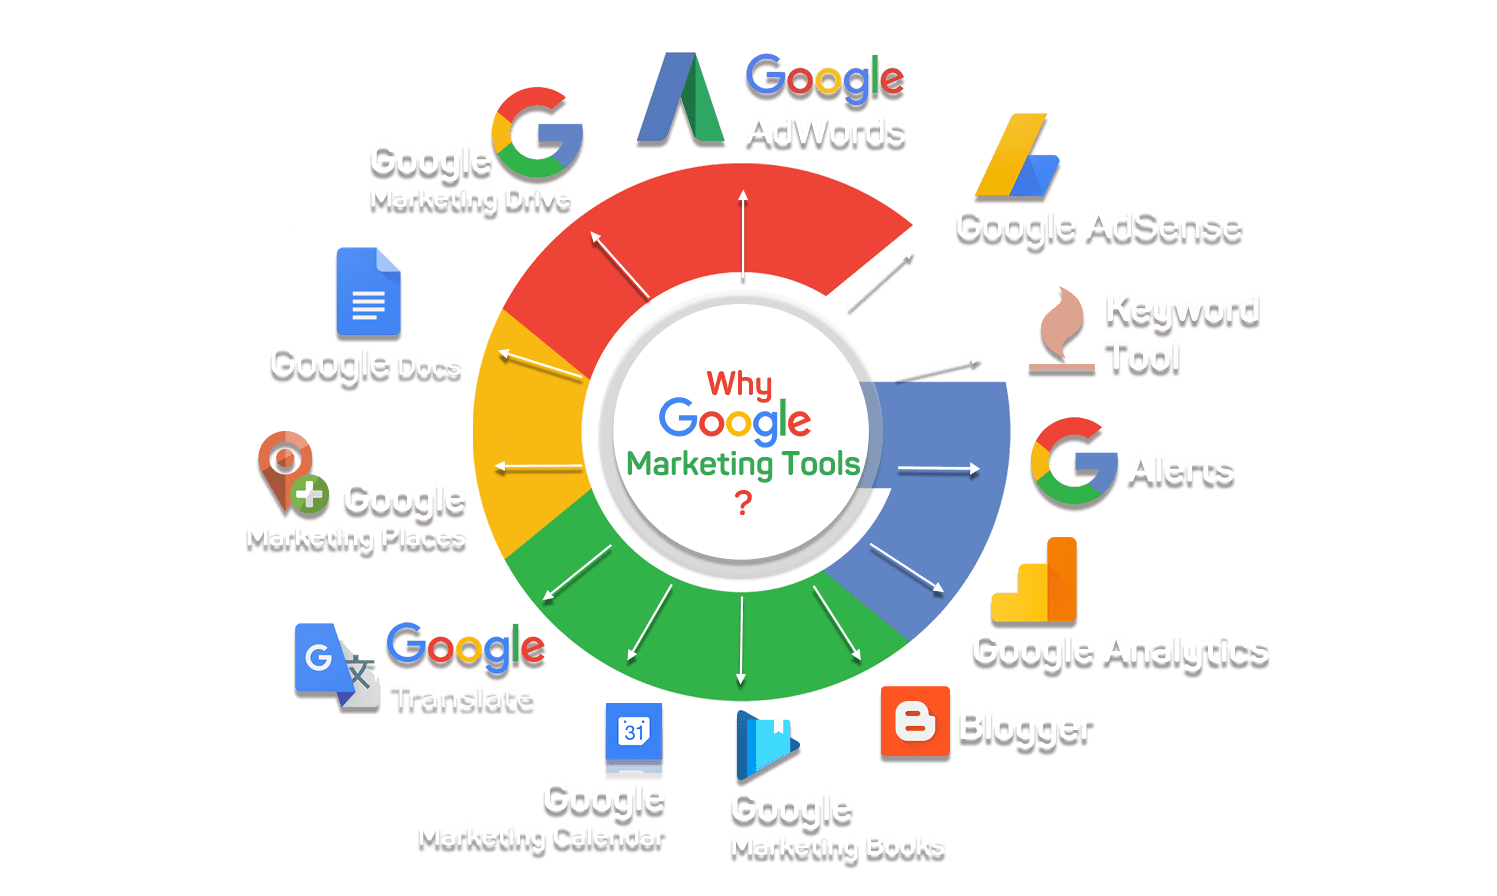 google ads strategy 2020, google ads strategy 2019, google adwords, google ads strategy plan, google ads strategy template, google keyword planner, google ads certification, google adwords tutorial, google ads service provider, https://iventurebd.com